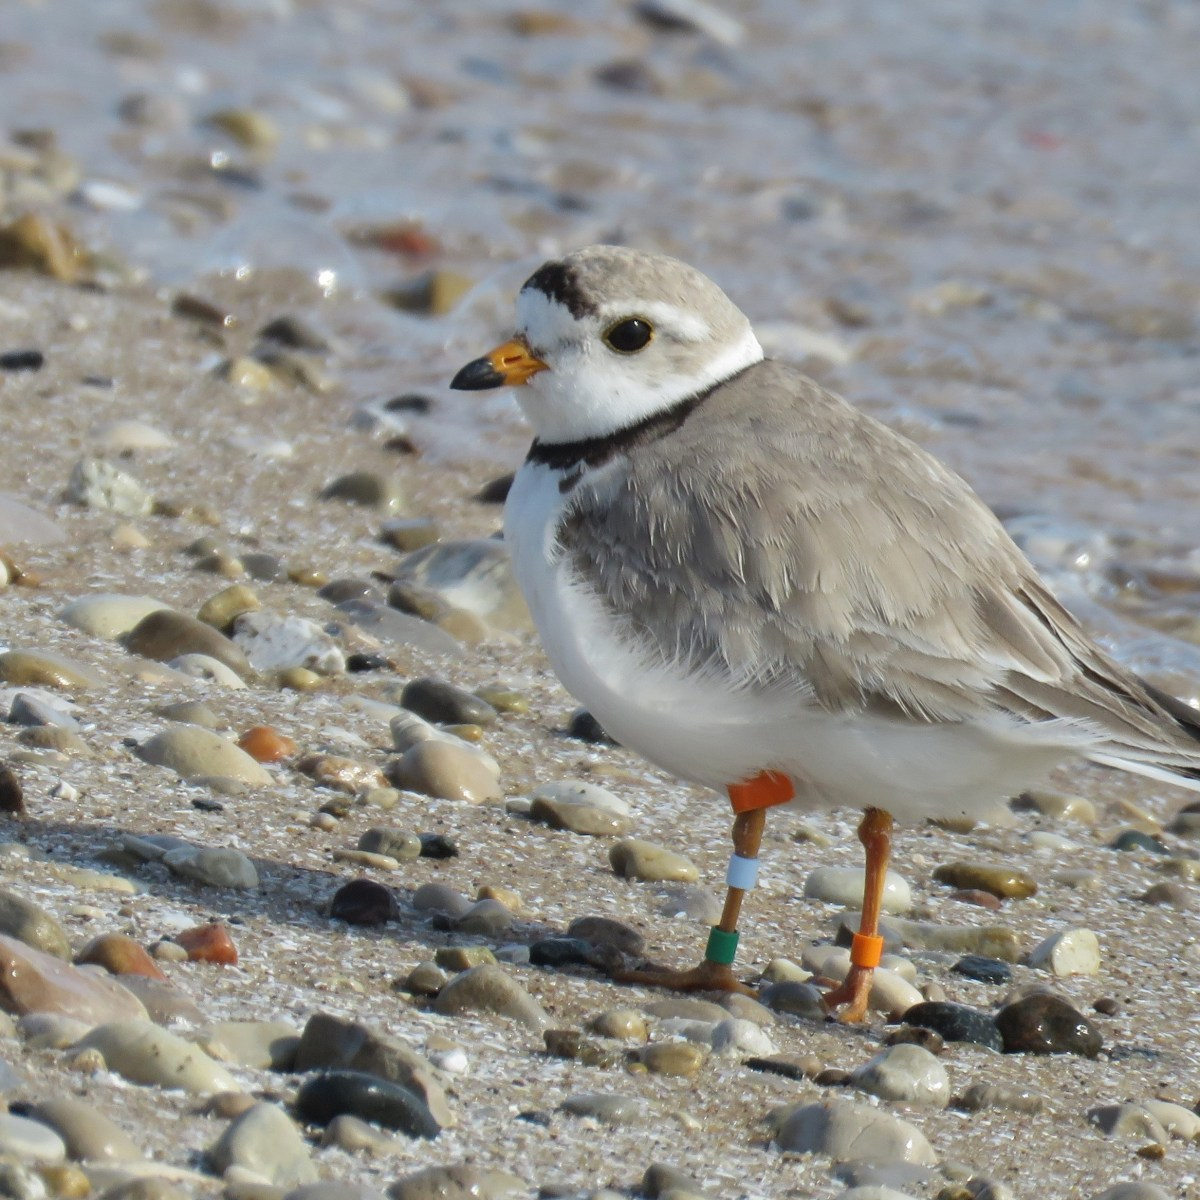 A Piping Plover stands on the rocky beach